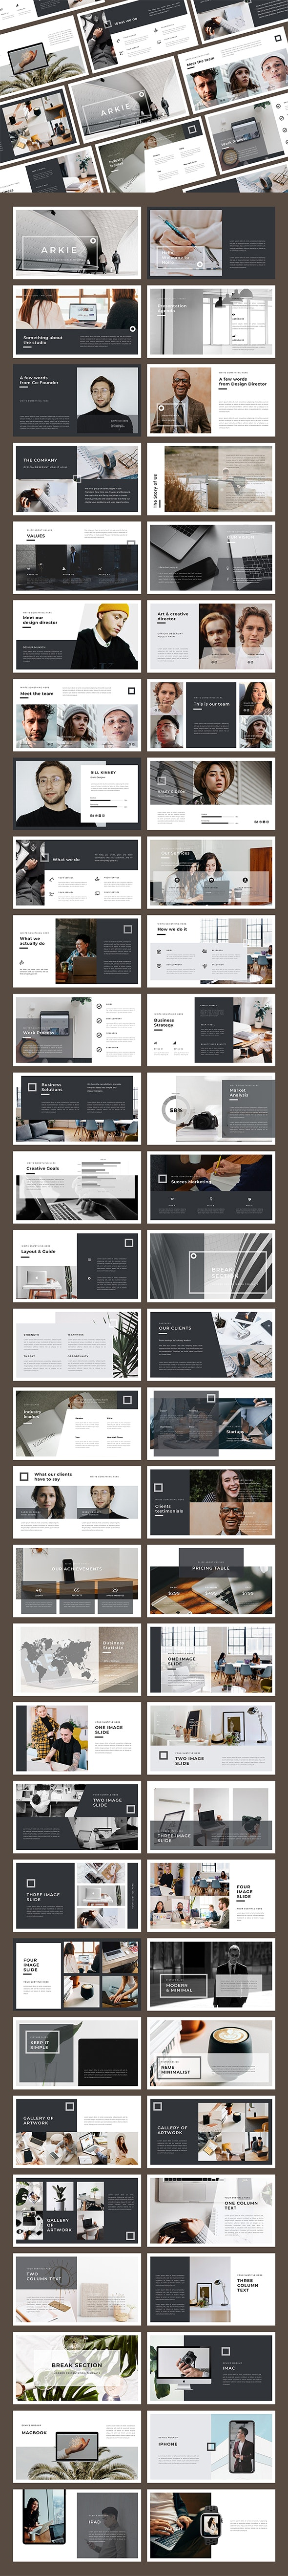 Arkie Keynote Template - Business Keynote Templates